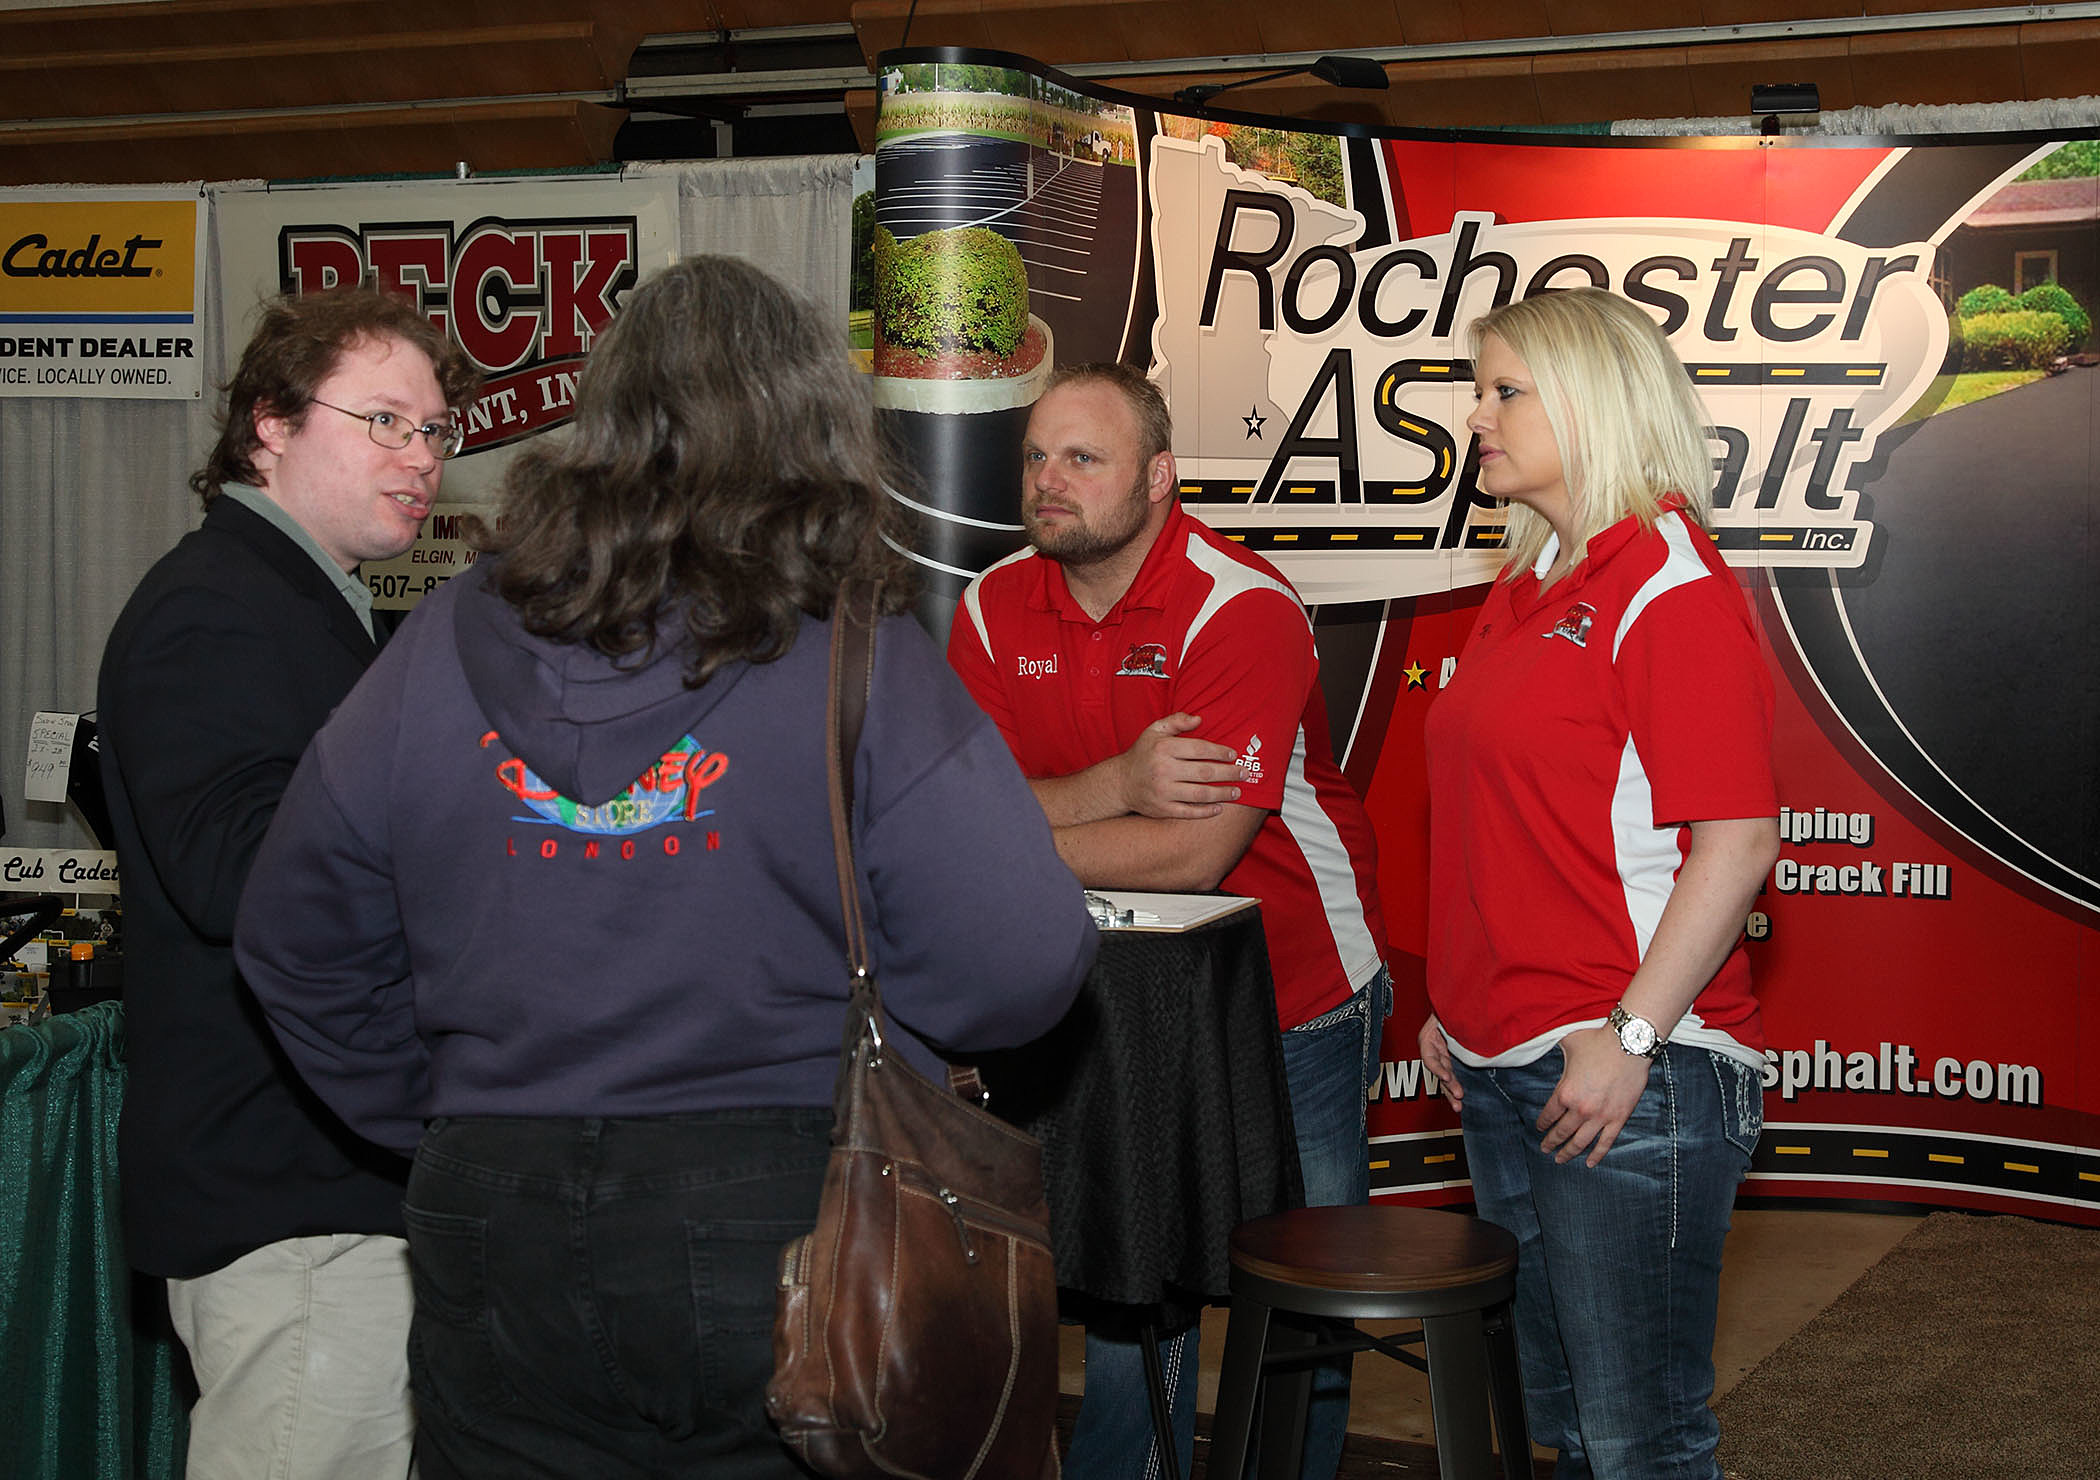 Rochester RV, Boat, Hunting, Vacation, and Home Show  – Exhibitor Contract | The Rock of Rochester